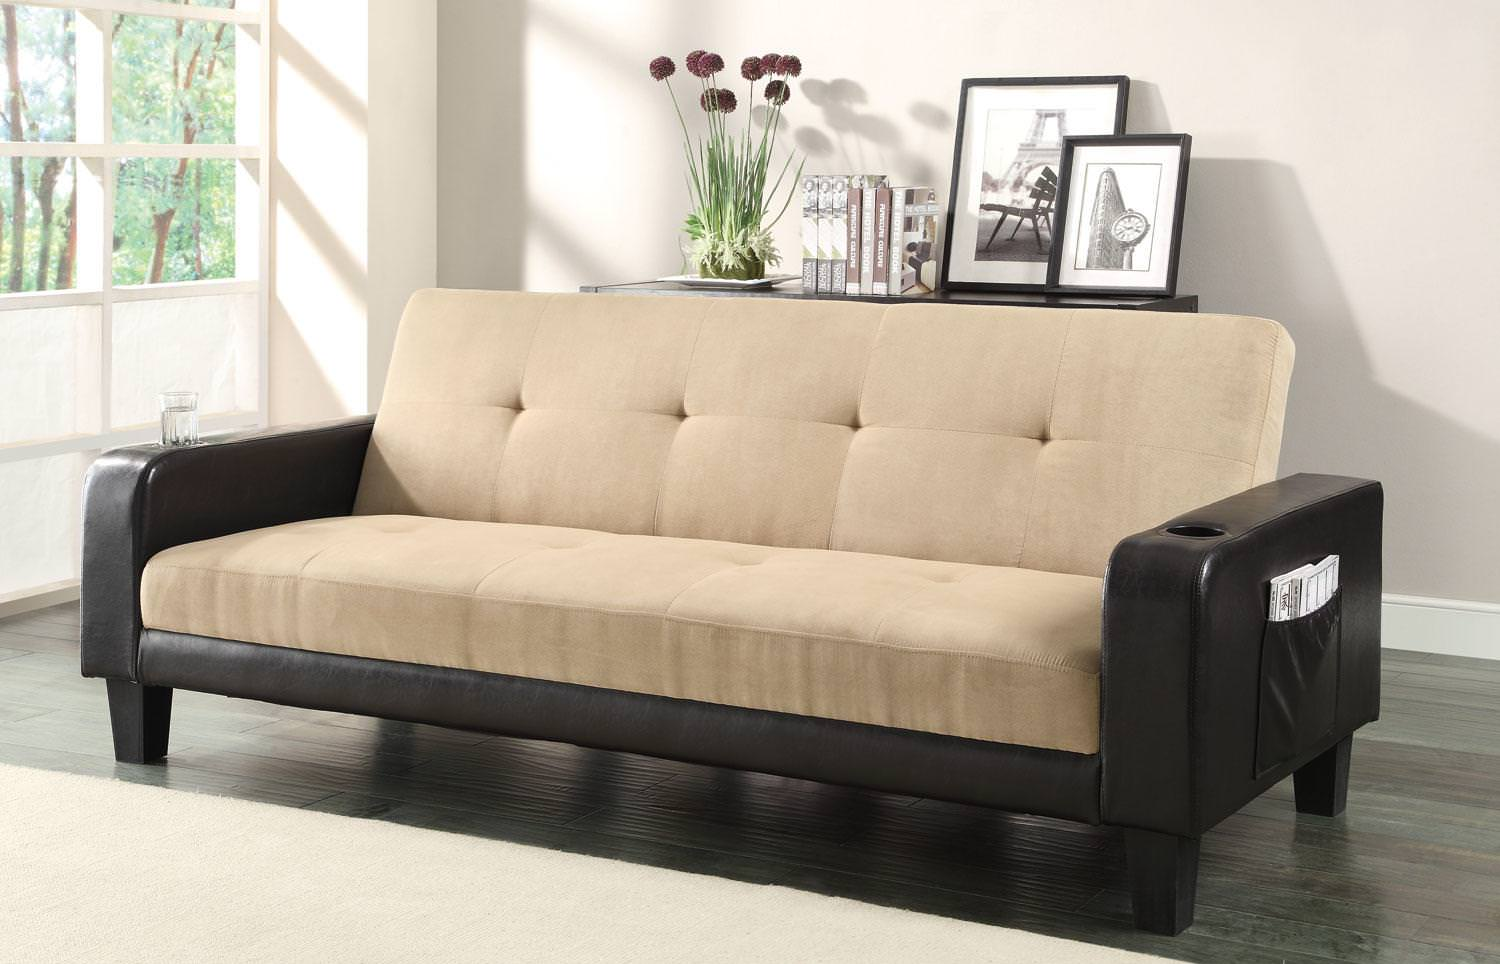 300295 sofa bed khaki by coaster for Sofa bed name